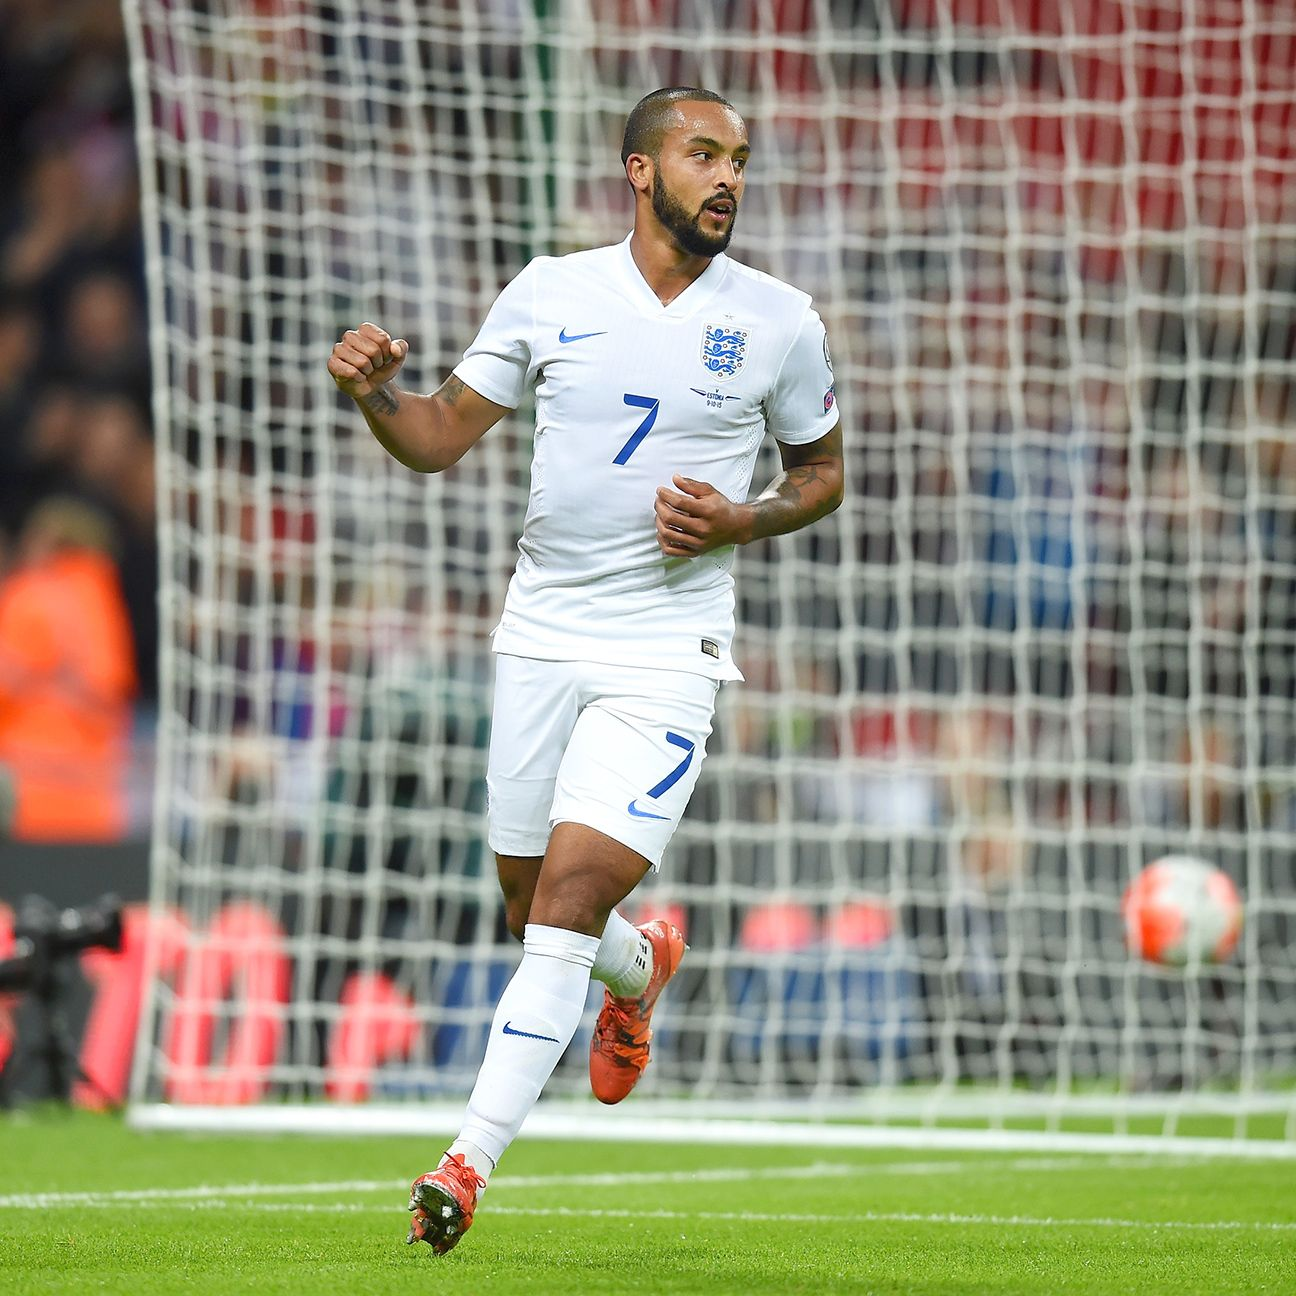 Arsenal striker Theo Walcott carried his red-hot form into international play.